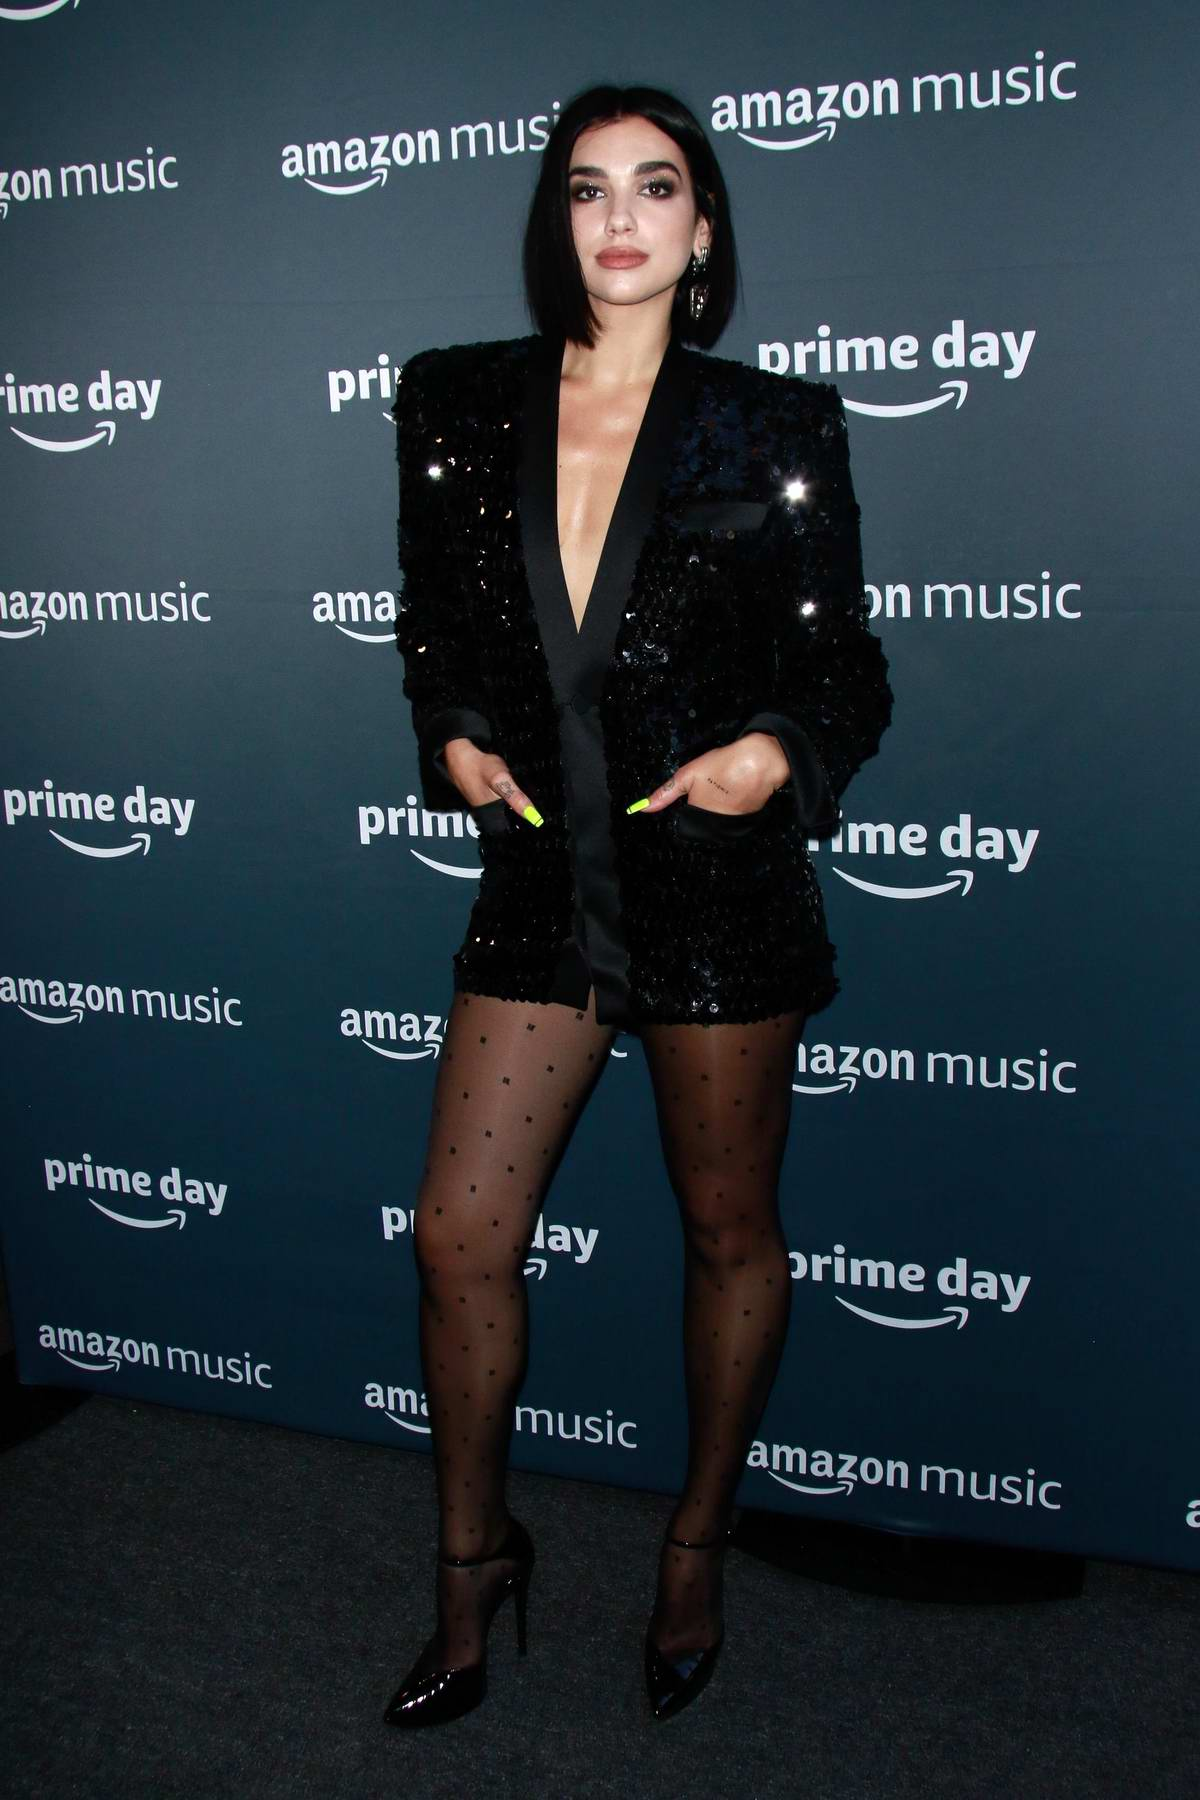 Dua Lipa attends the Amazon's Prime Day Concert at Hammerstein Ballroom in New York City